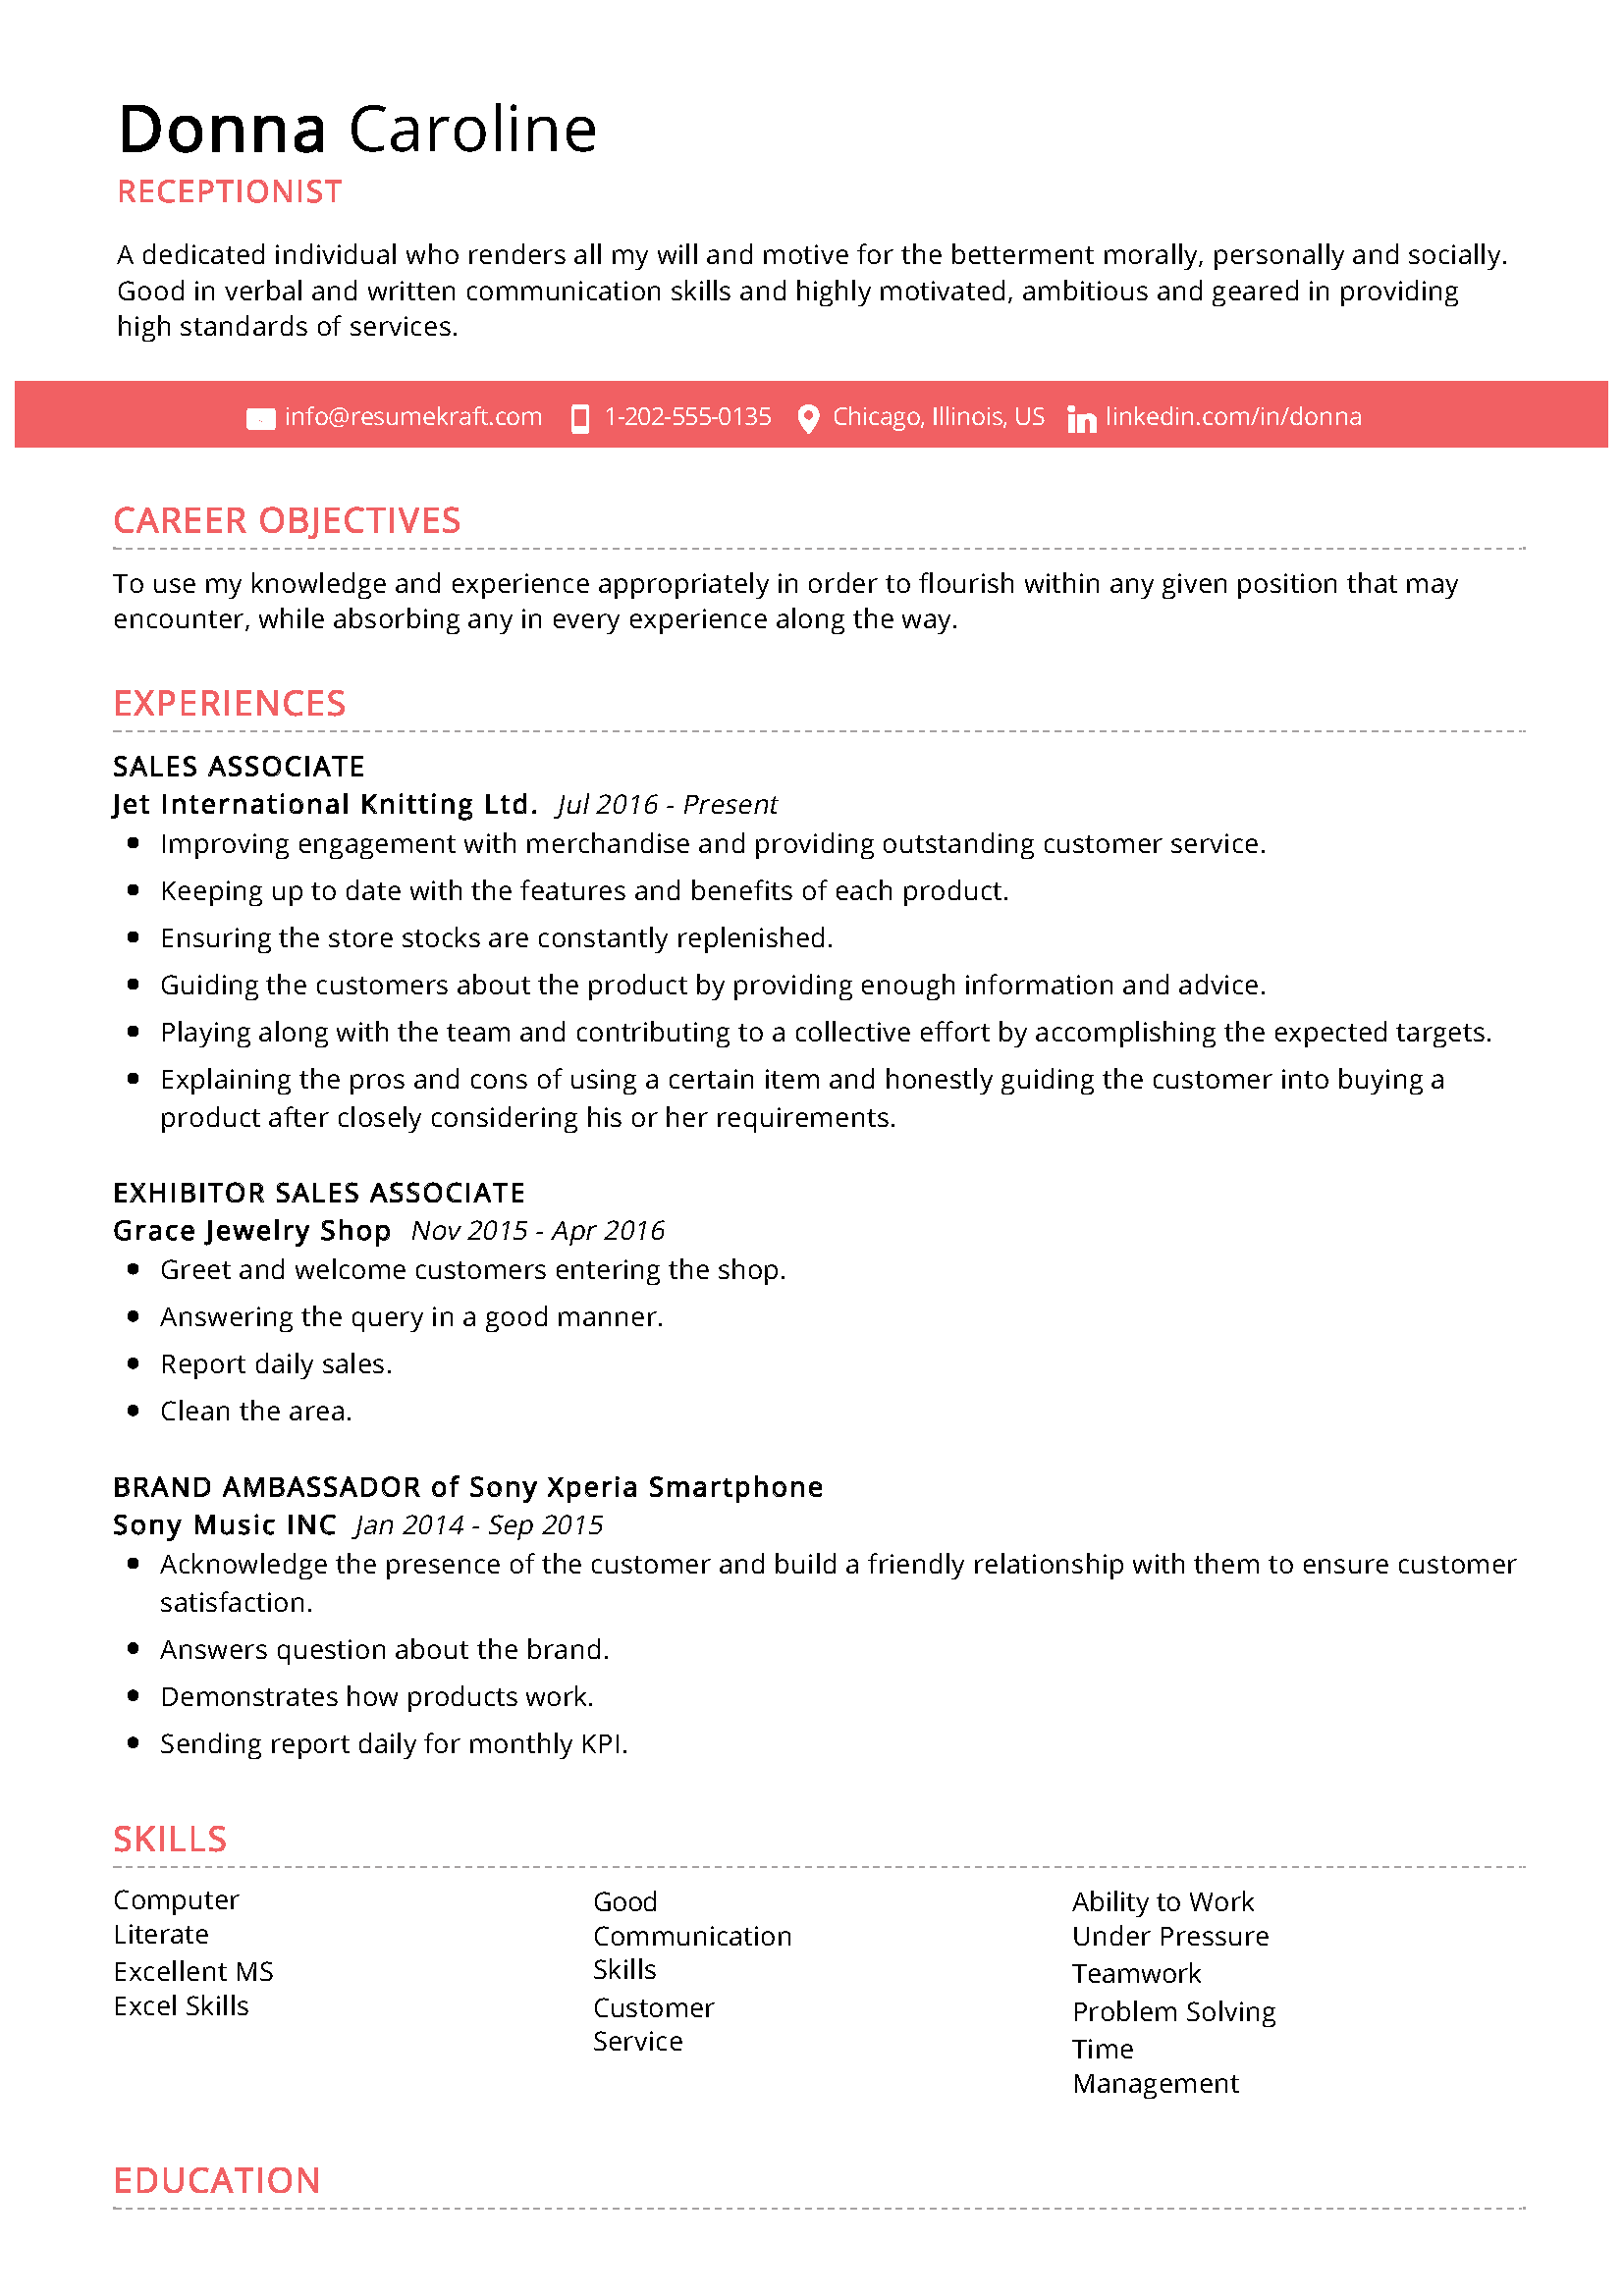 Receptionist Sample Resume in 2020 Best resume format